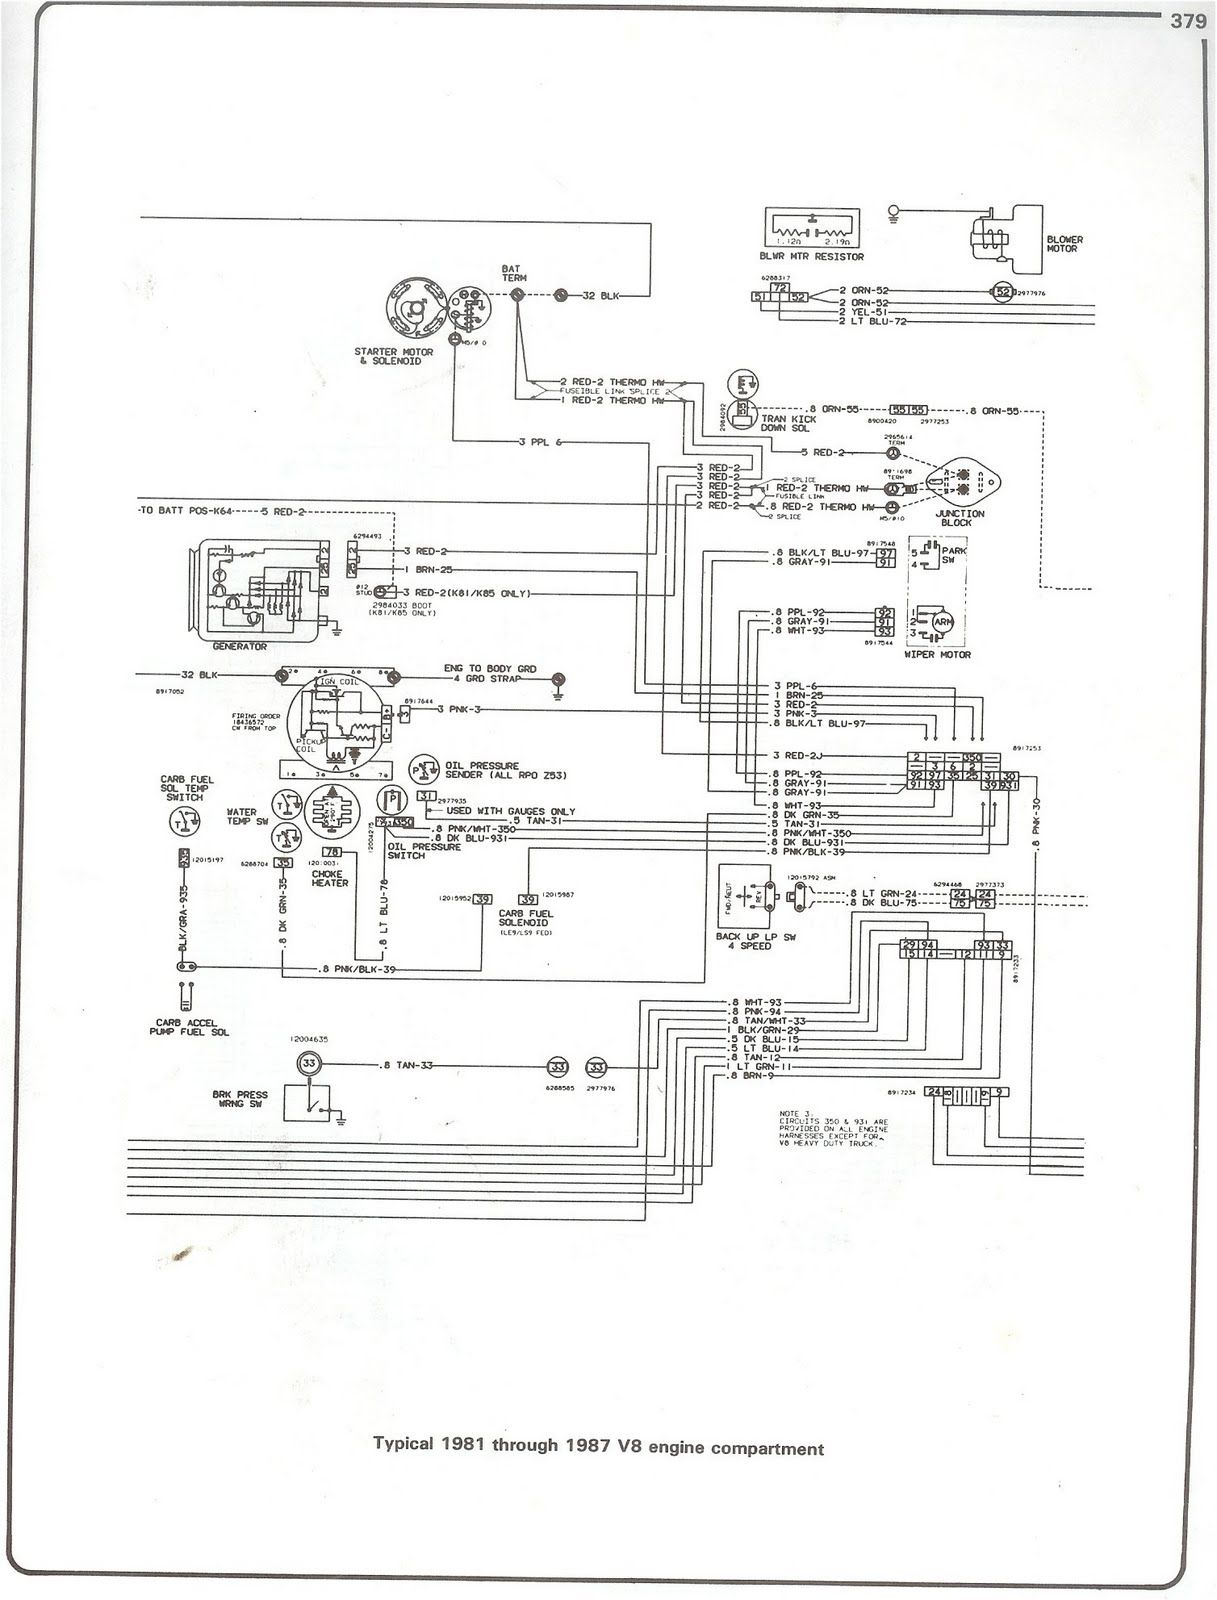 This Is Engine Compartment Wiring Diagram For 1981 Trough 1987 Chevrolet V8 Truck Description From Autowiringdiag Chevy Trucks 1979 Chevy Truck 87 Chevy Truck